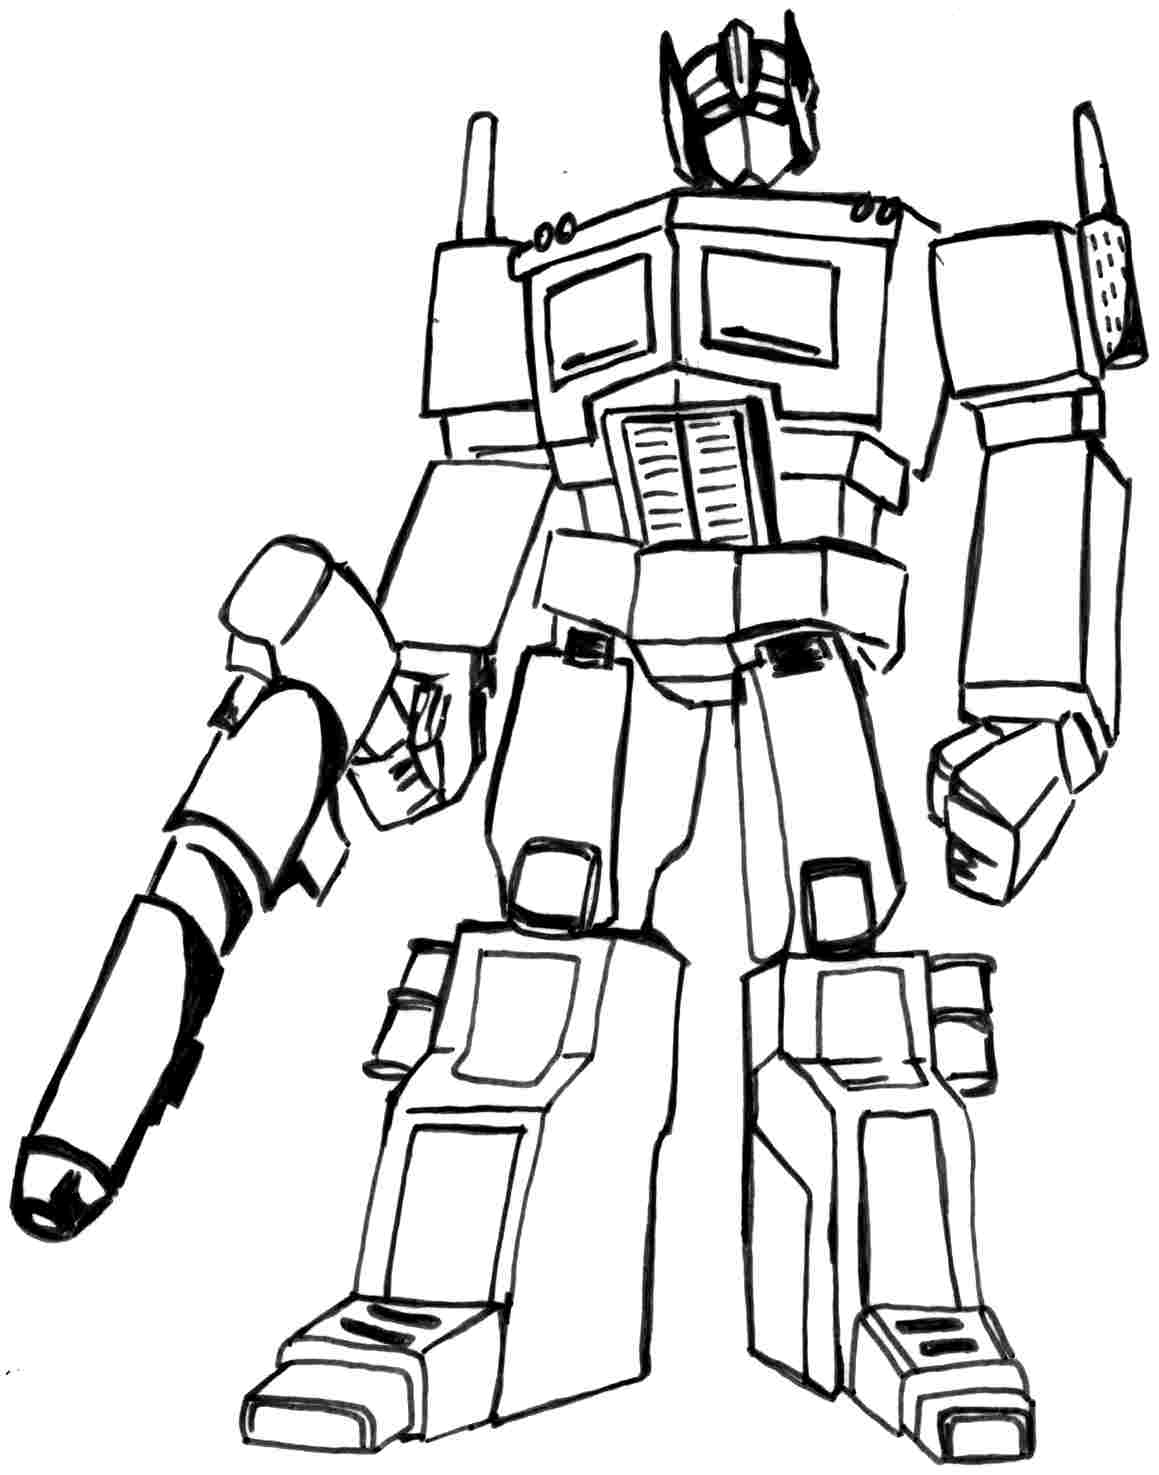 coloring transformers transformer coloring pages for kids 2019 educative printable coloring transformers